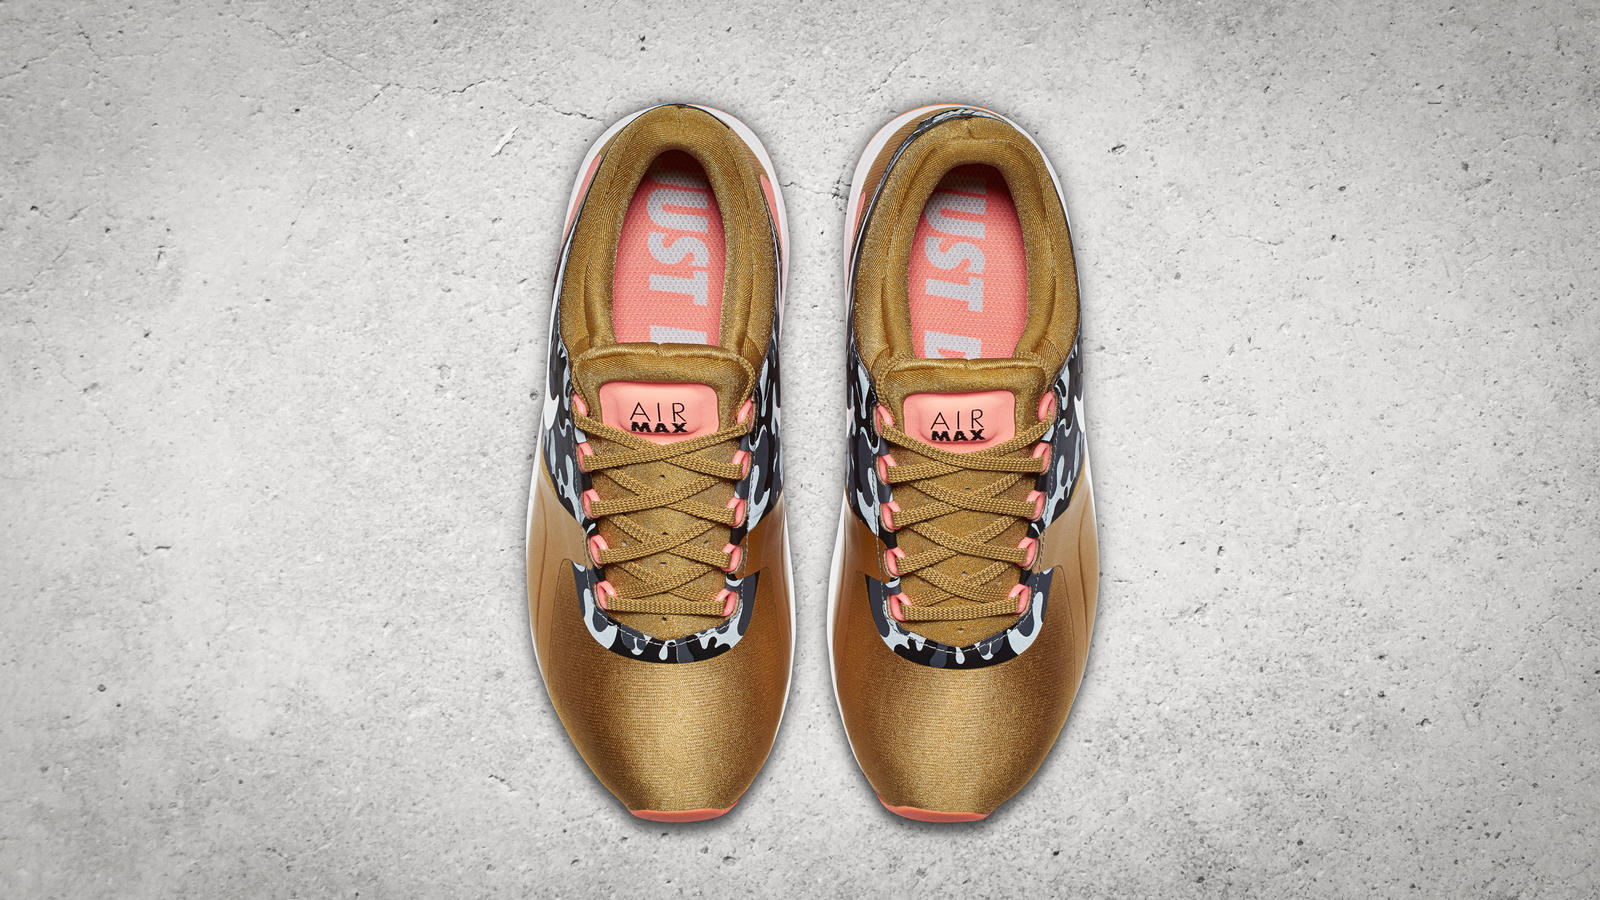 d6ec41b0e9 Annie Leblanc's Nike Air Max Zero is available January 20 in grade school  sizes on nike.com in North America.